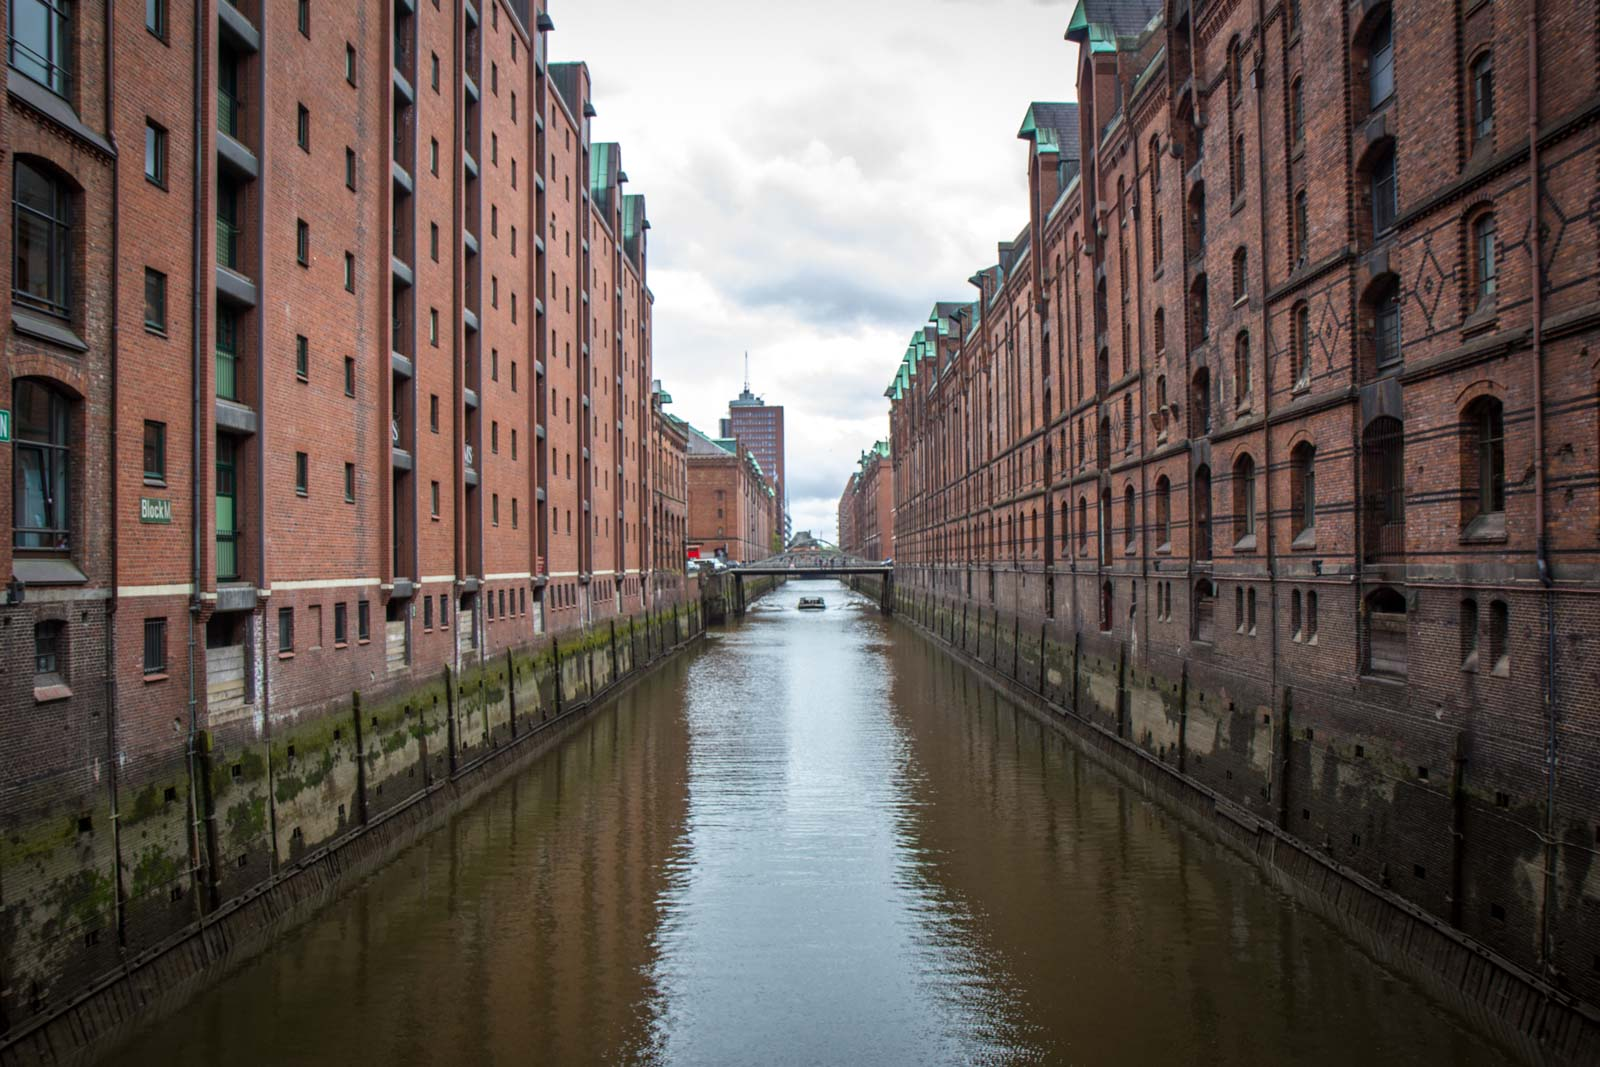 Speicherstadt warehouse district, HafenCity, Hamburg, Germany